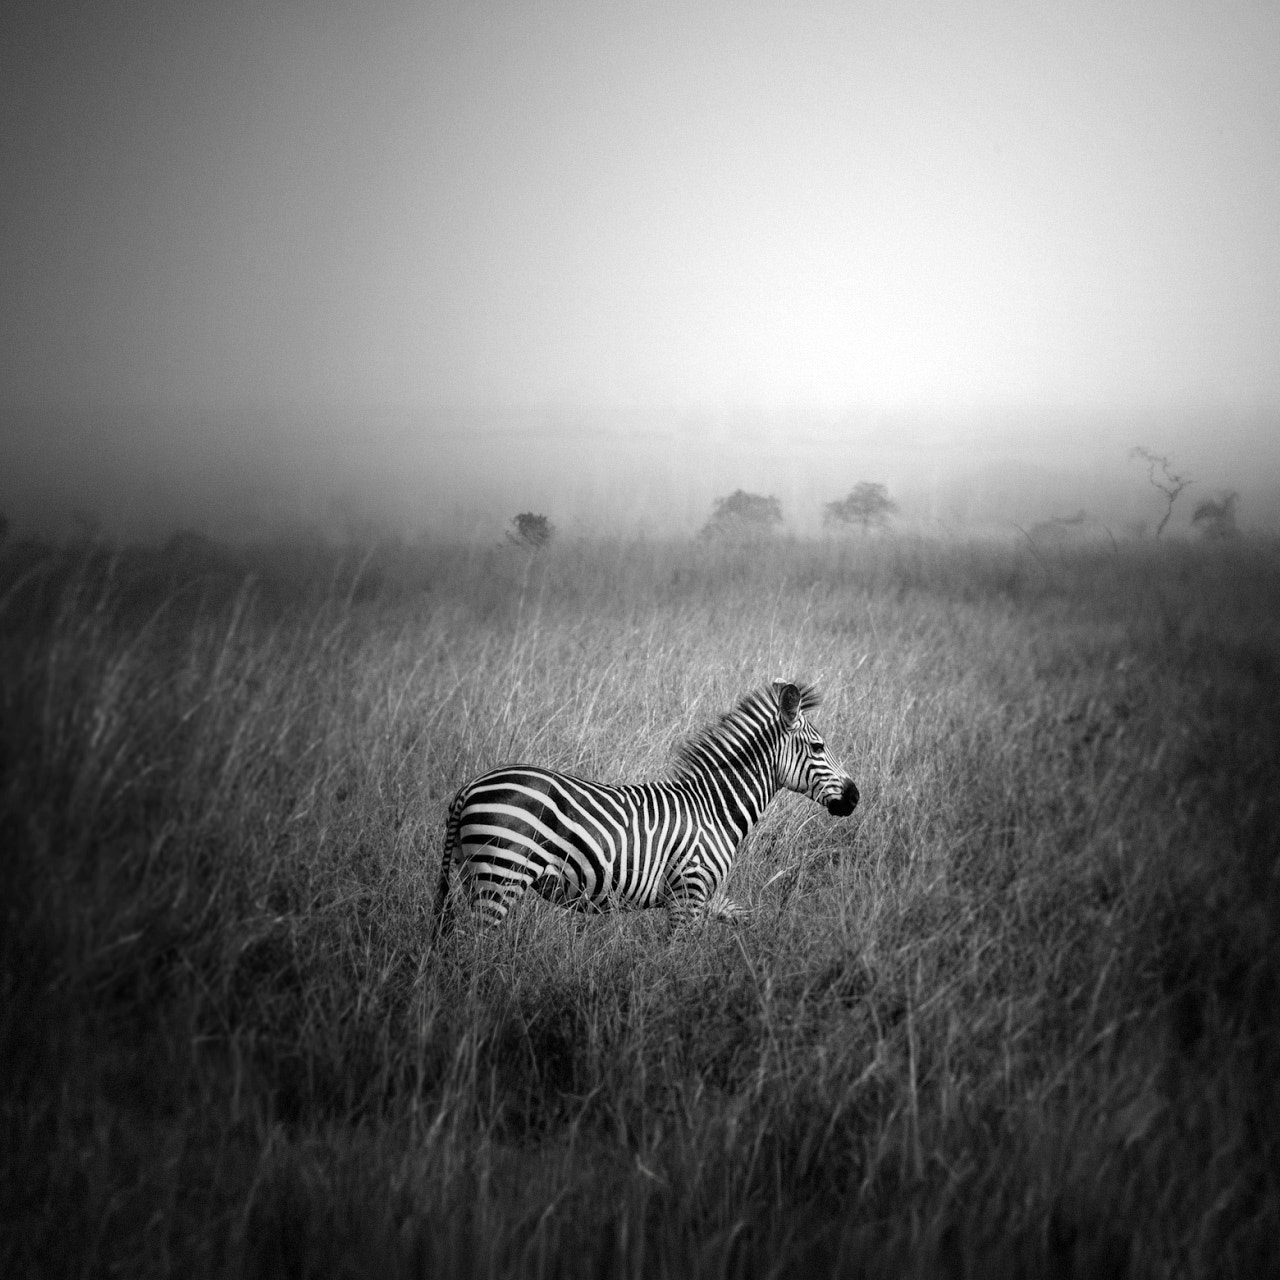 Photograph pundamilia by Andy Lee on 500px